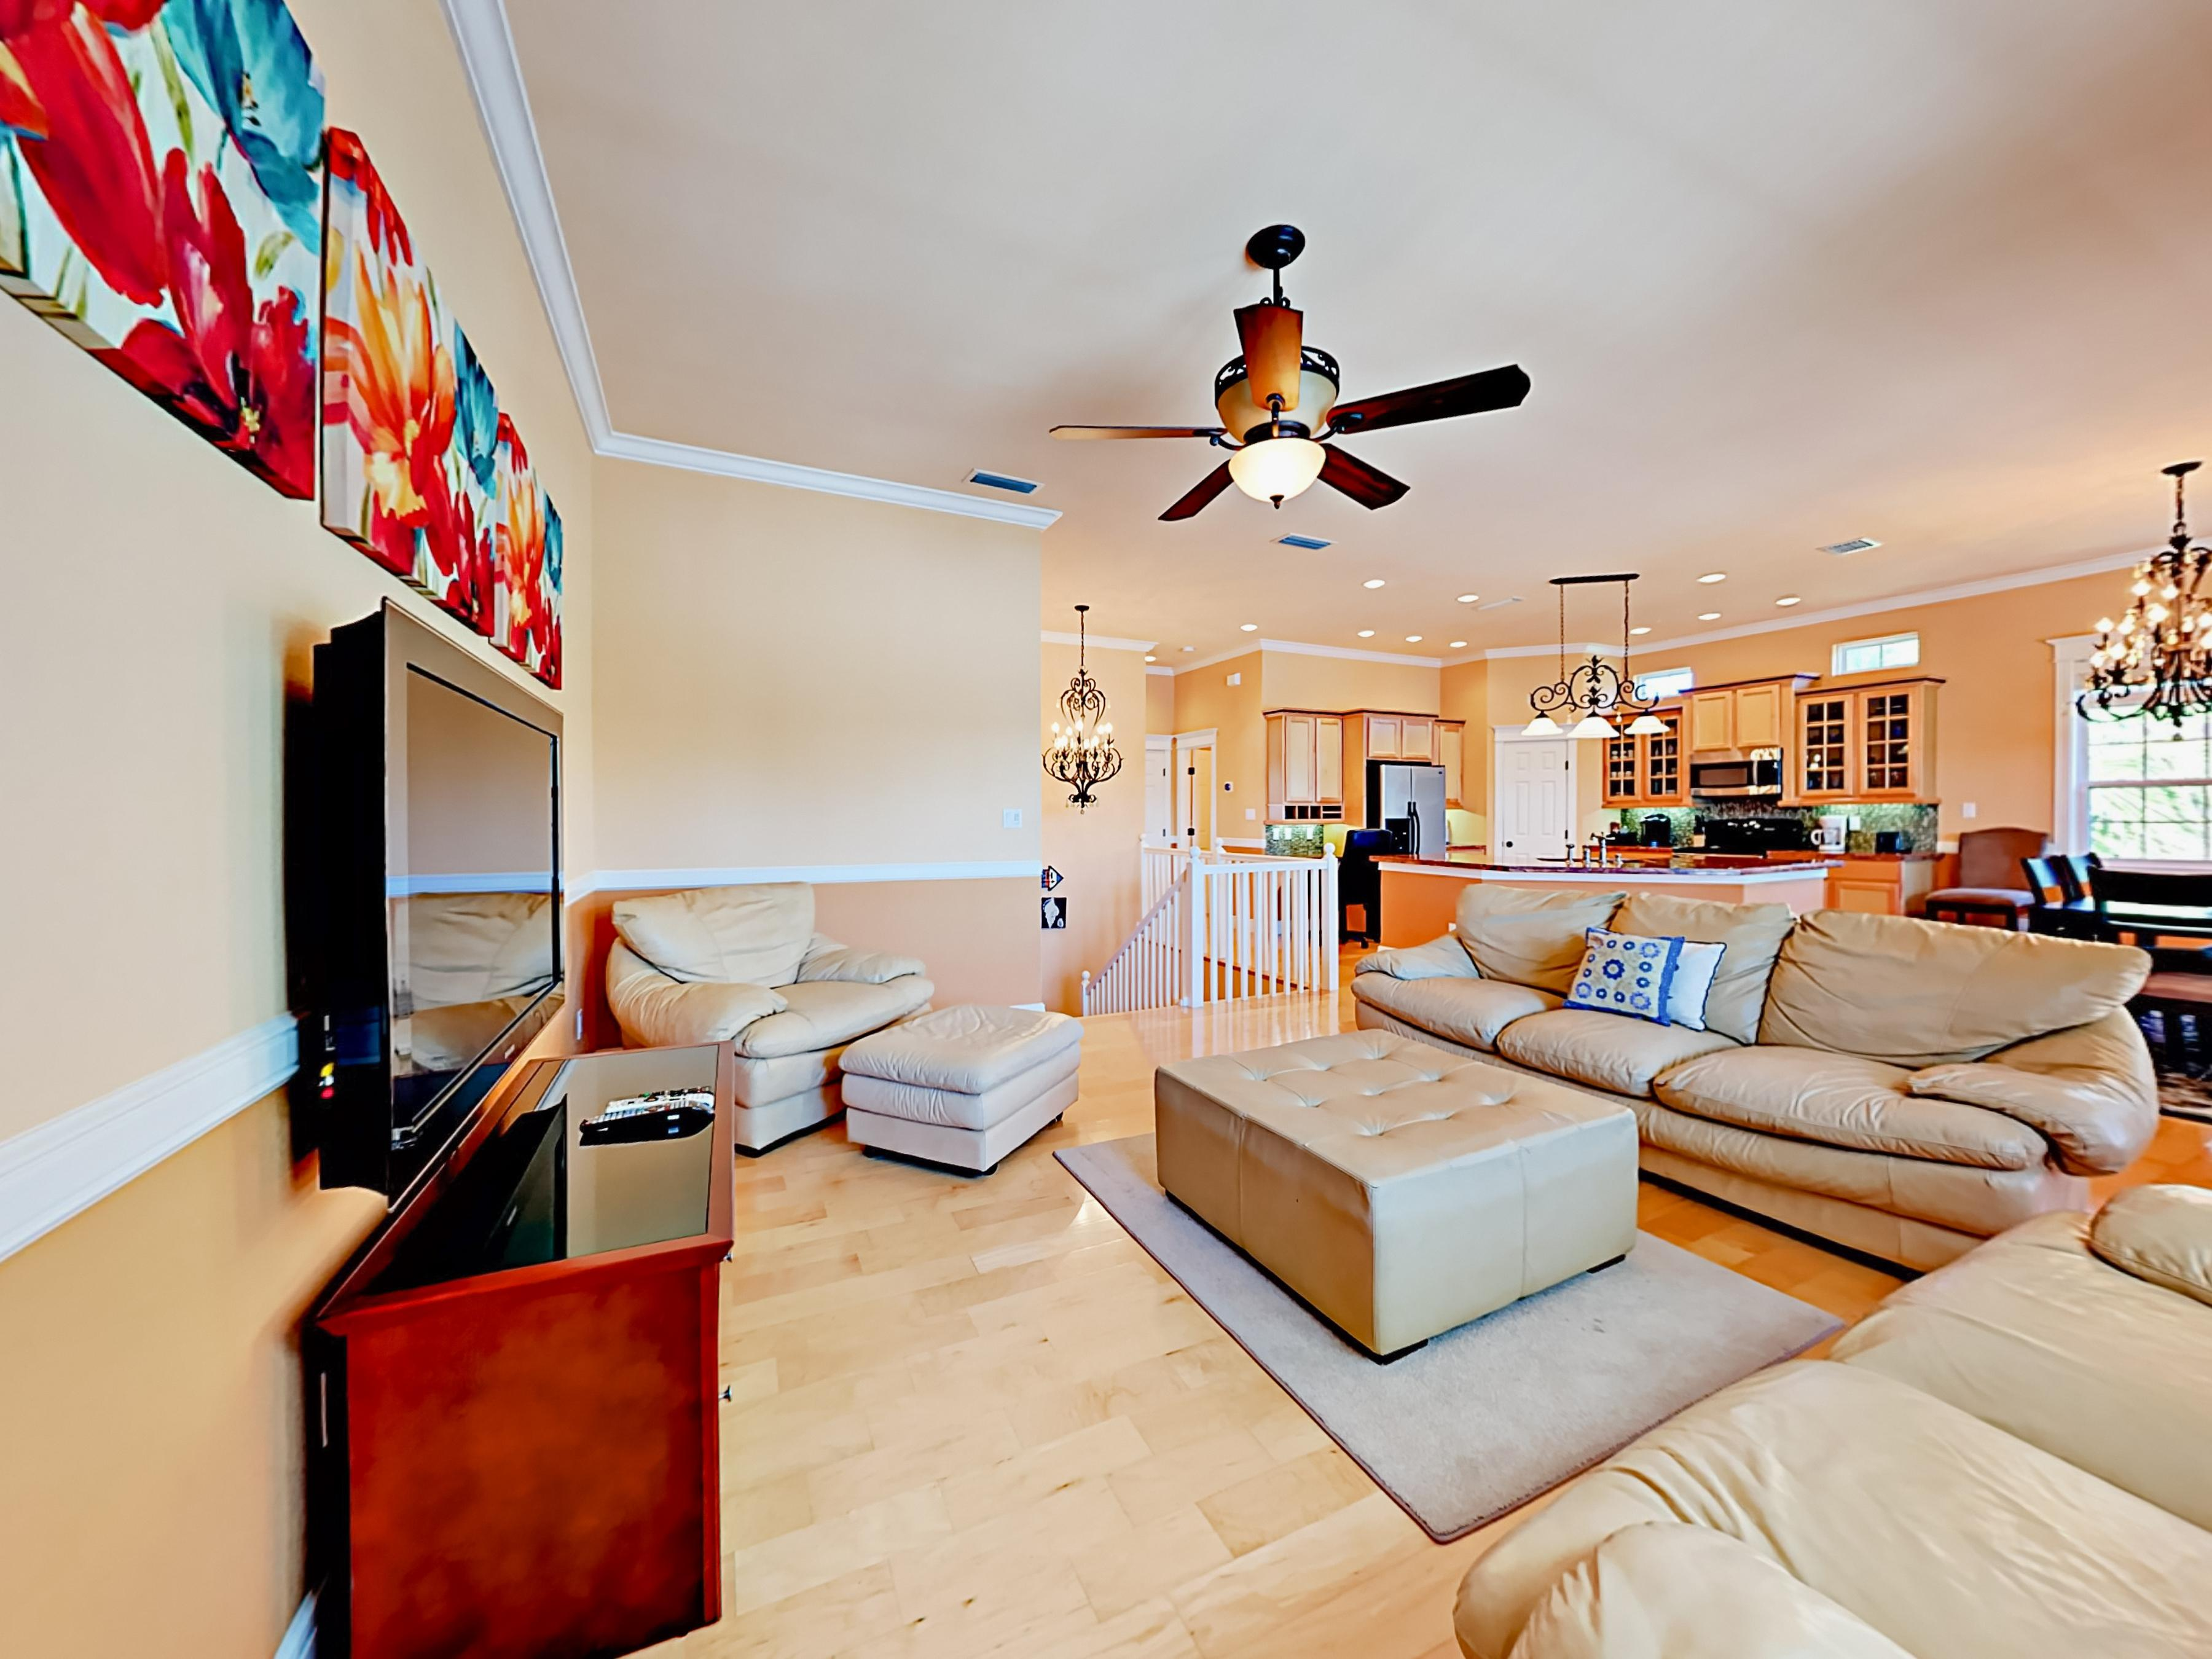 Welcome to South Padre Island! The open floor plan living space keeps the conversation going.